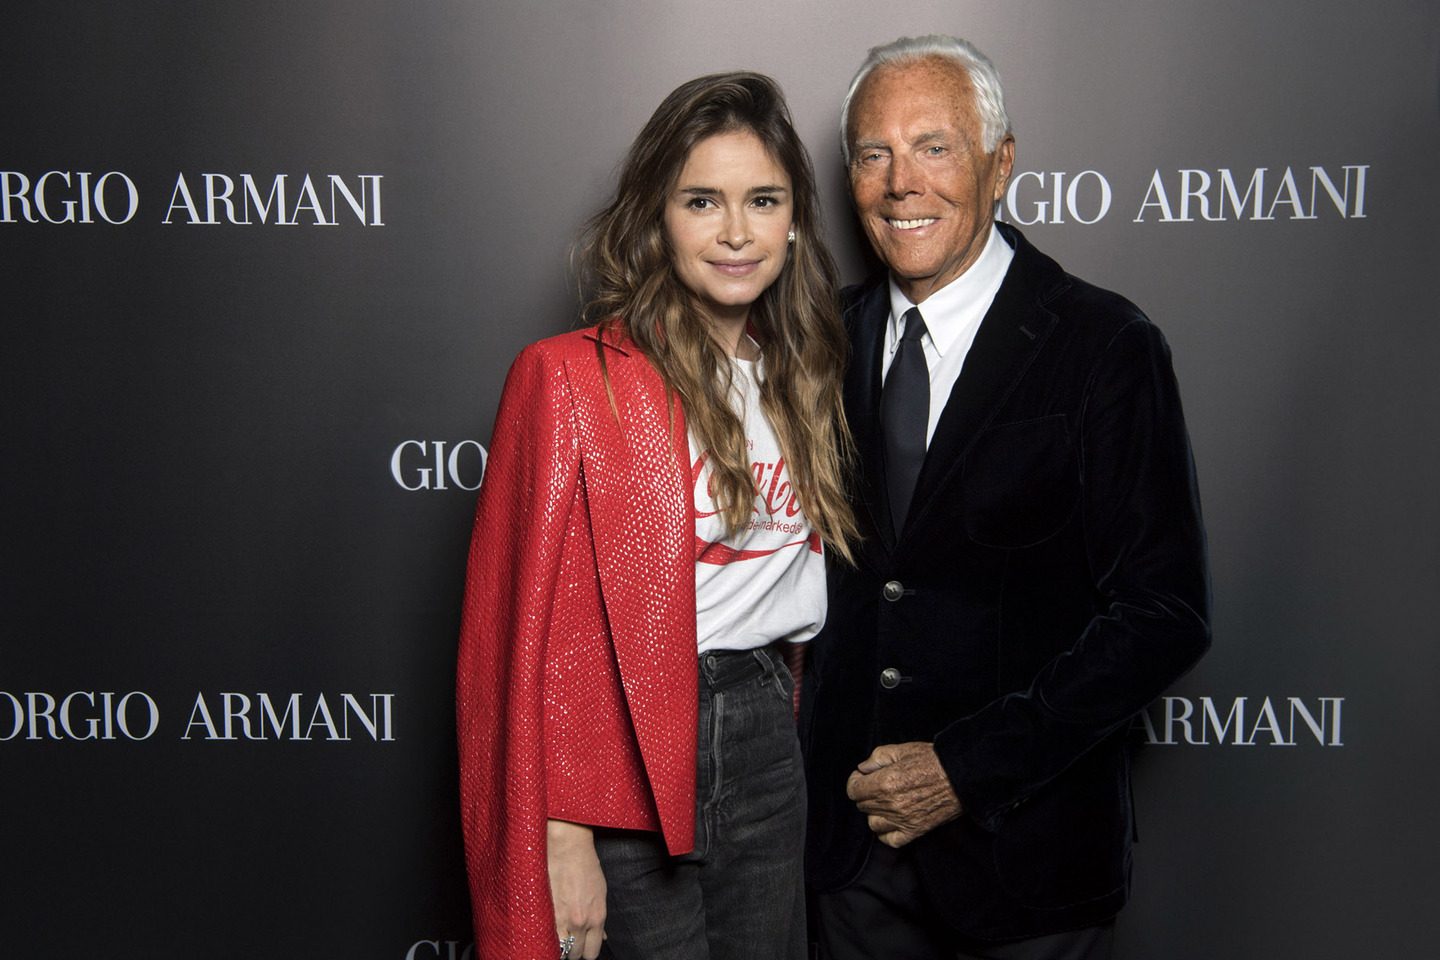 giorgio armani a mosca book signing e fashion show. Black Bedroom Furniture Sets. Home Design Ideas